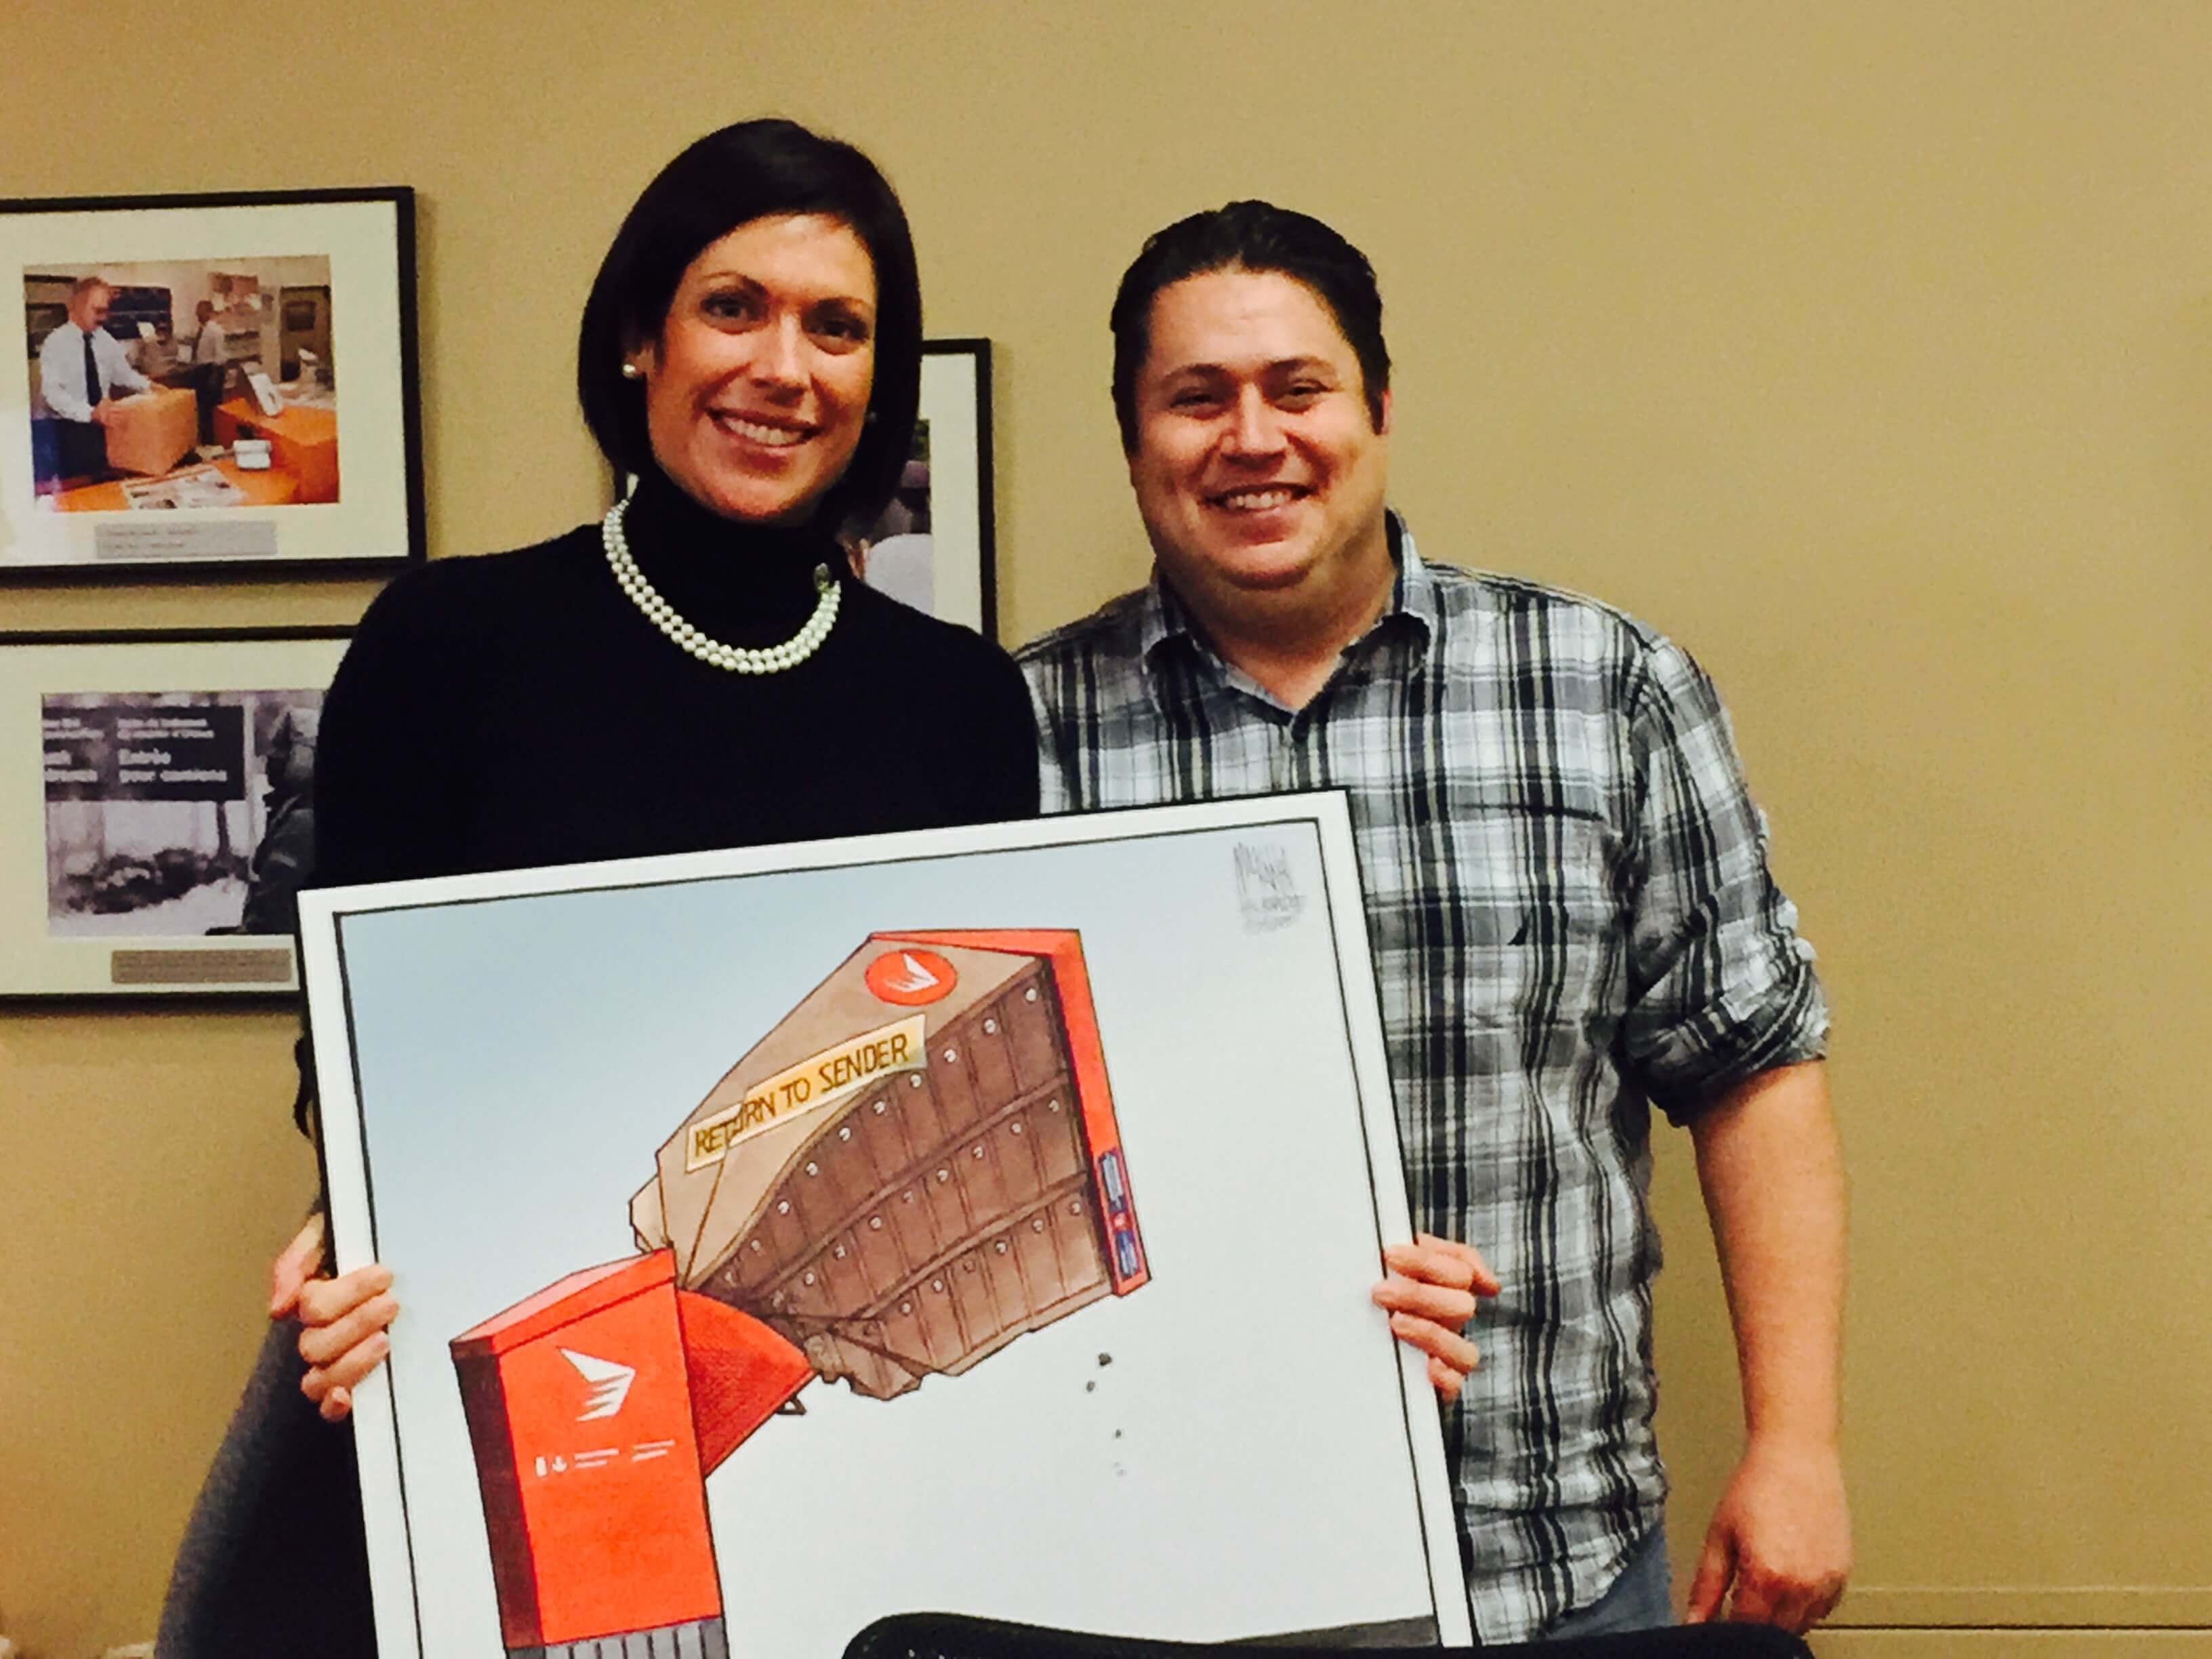 Presenting Karine Trudel with the 'Return to Sender' post-election CMB cartoon from the Chronicle-Herald